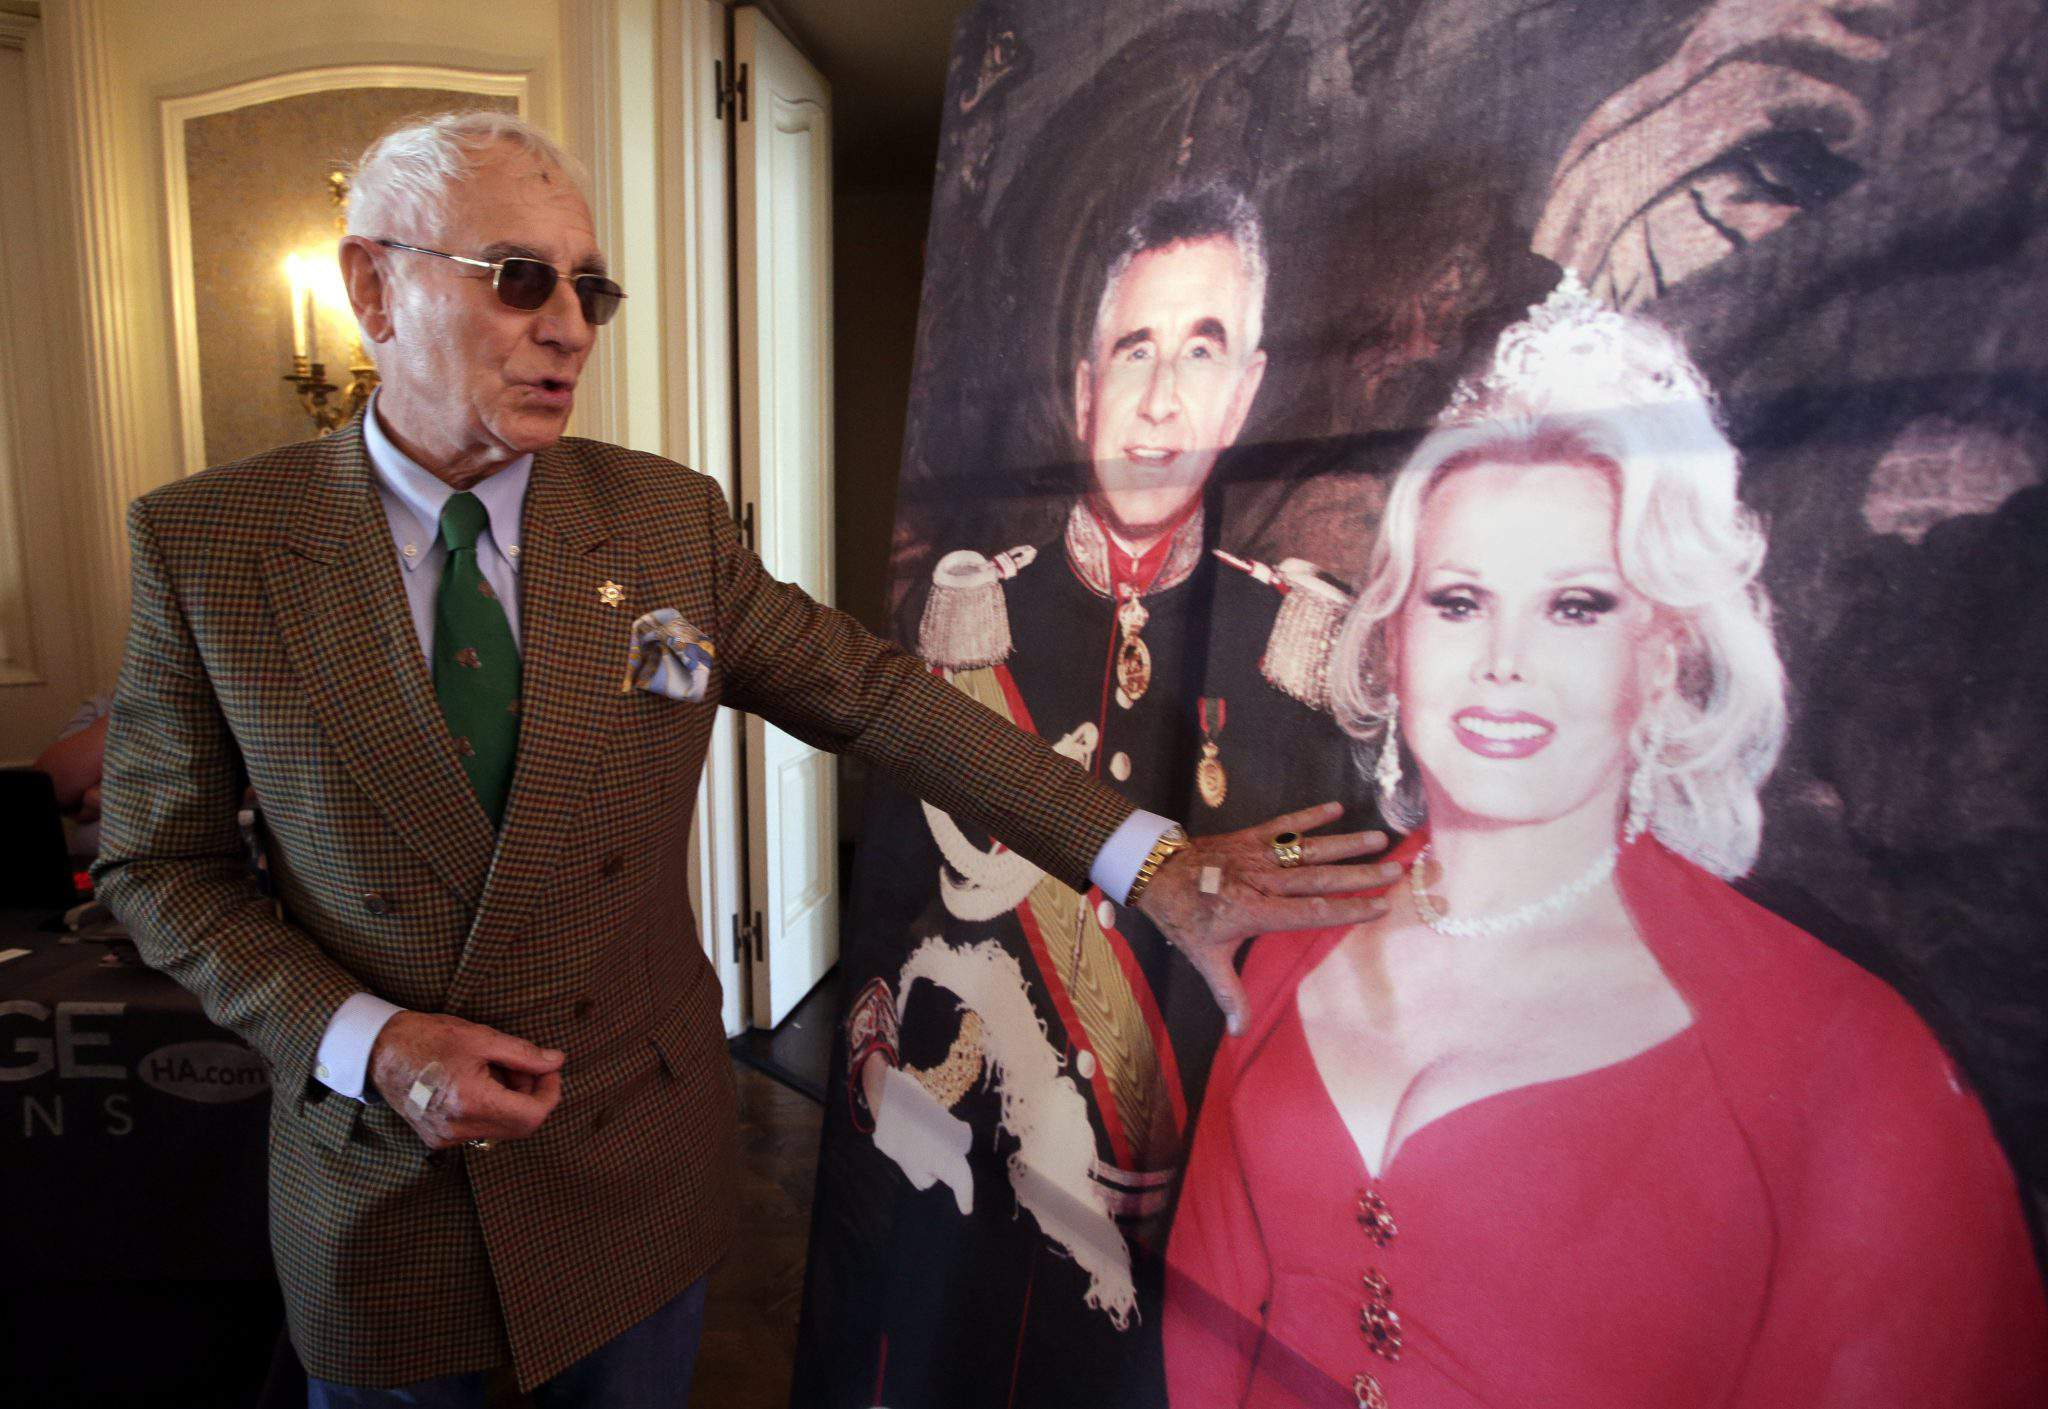 Take a look at Zsa Zsa Gábor's home and treasures